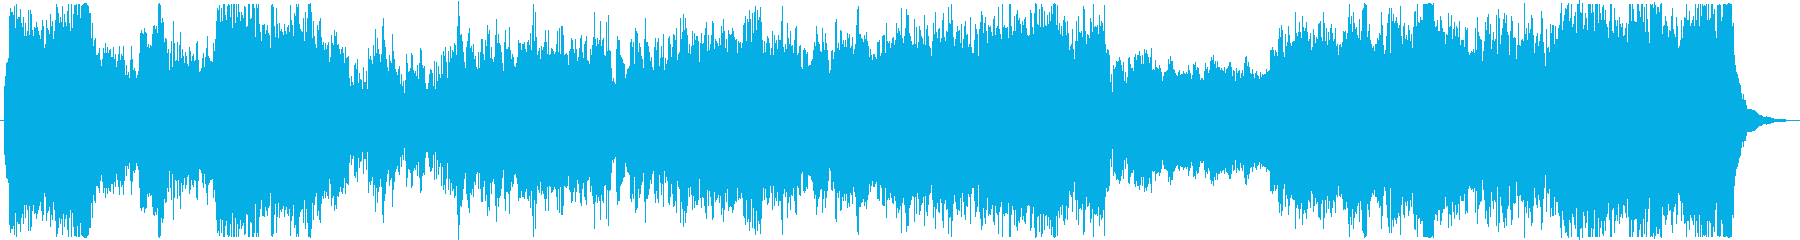 Robot animation style BGM of magnificent scale feeling's reproduced waveform